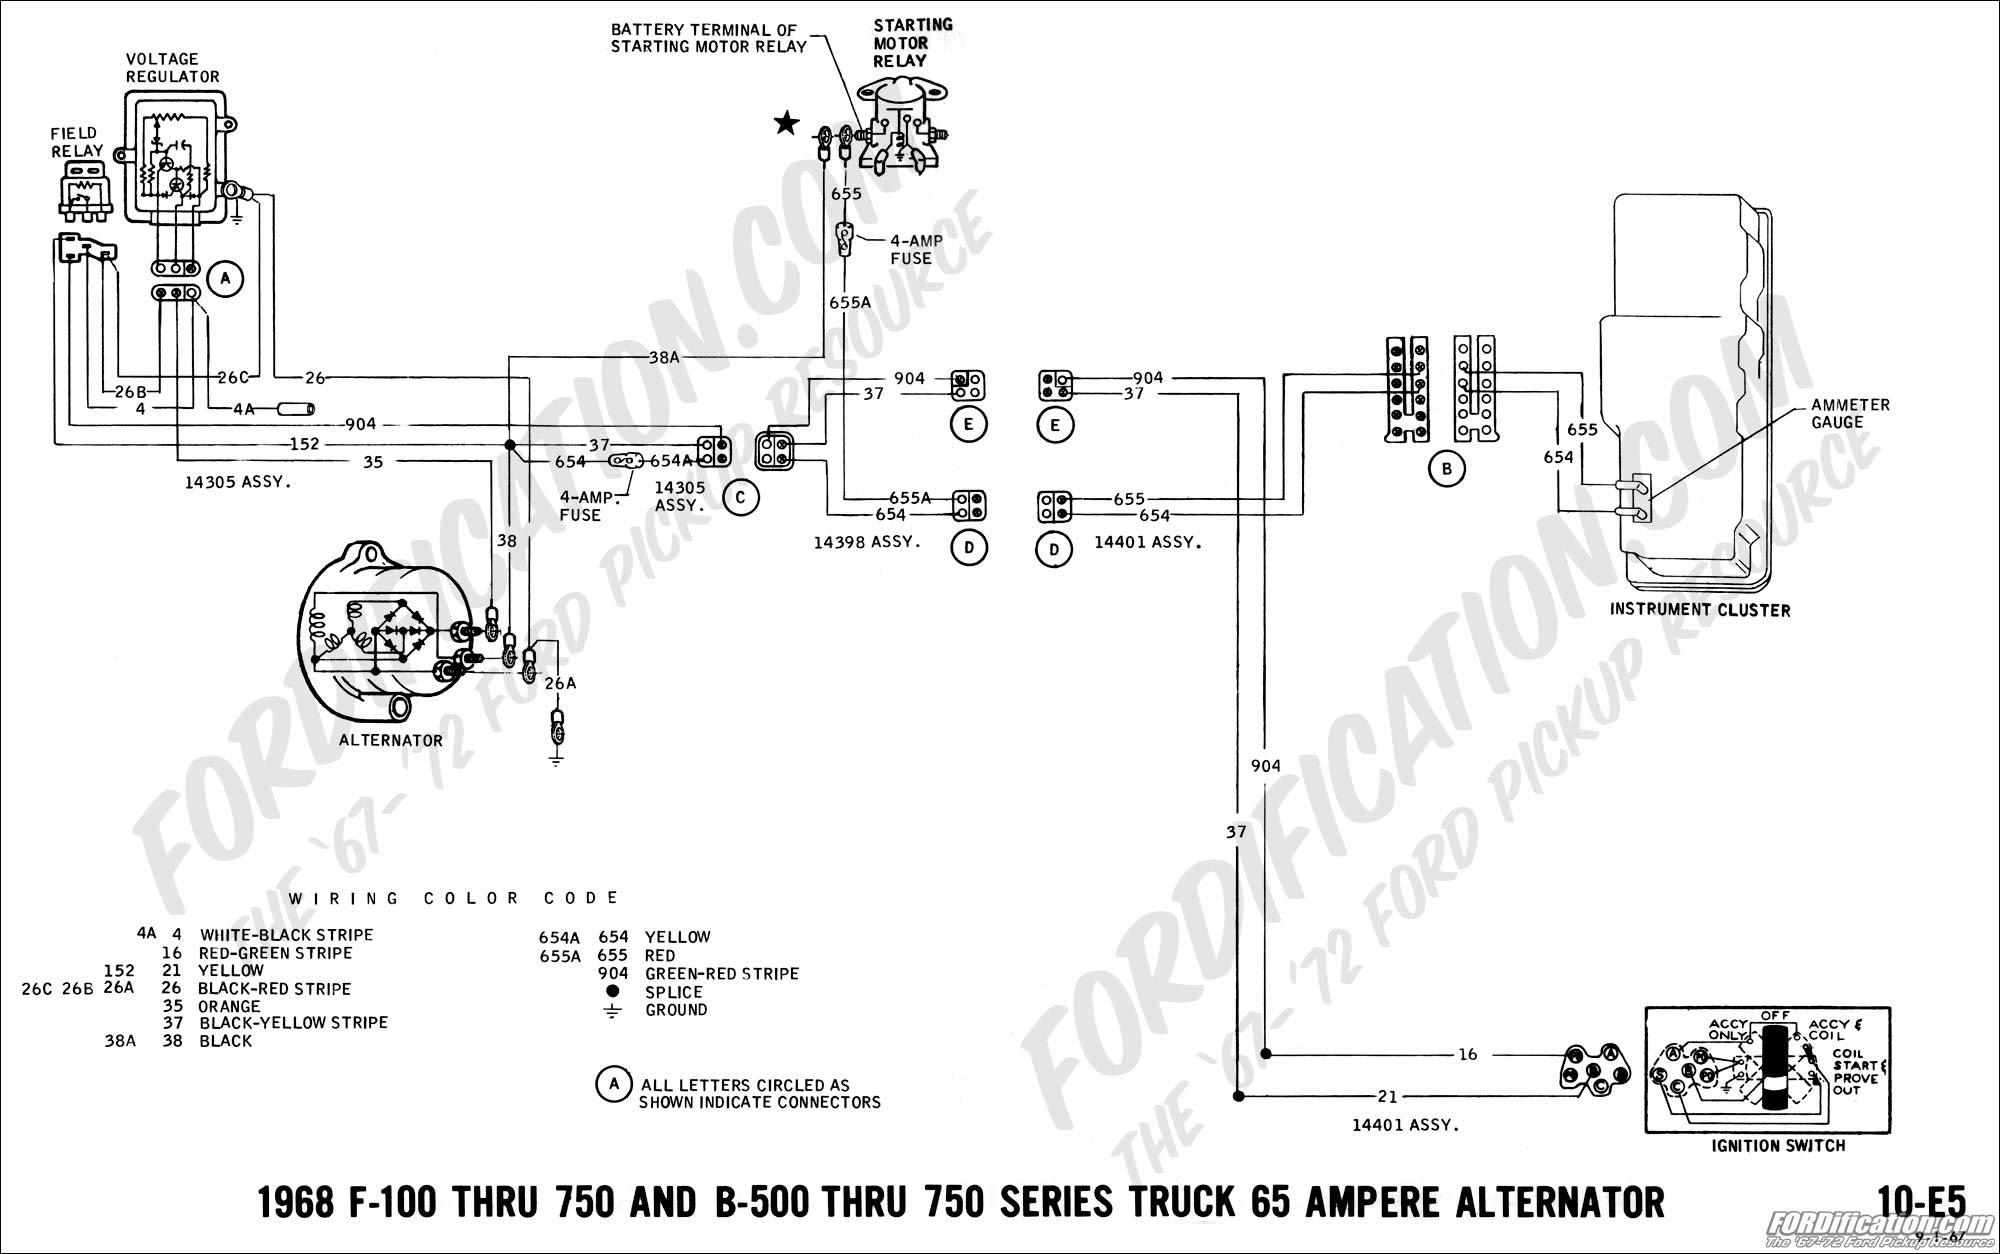 1968 Corvette Alternator Wiring Diagram 2011 Kia Sedona Engine Diagram Pipiing Tukune Jeanjaures37 Fr